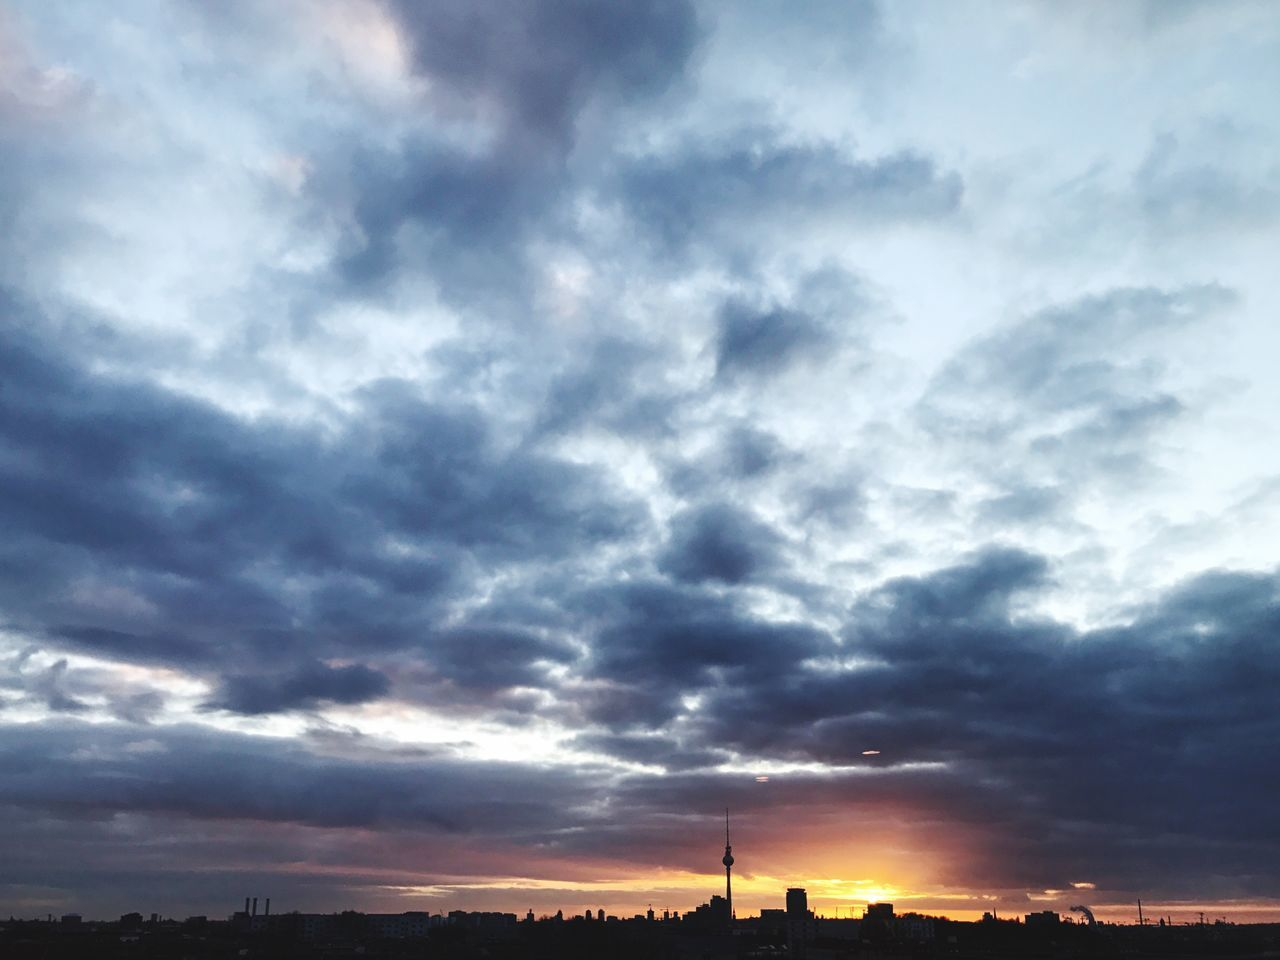 Berlin Sunset Skyline Sillhouette TV Tower Sky Cloud - Sky Building Exterior Outdoors Architecture No People Built Structure Nature Silhouette Storm Cloud Low Angle View Dramatic Sky Scenics Beauty In Nature Day Cityscape